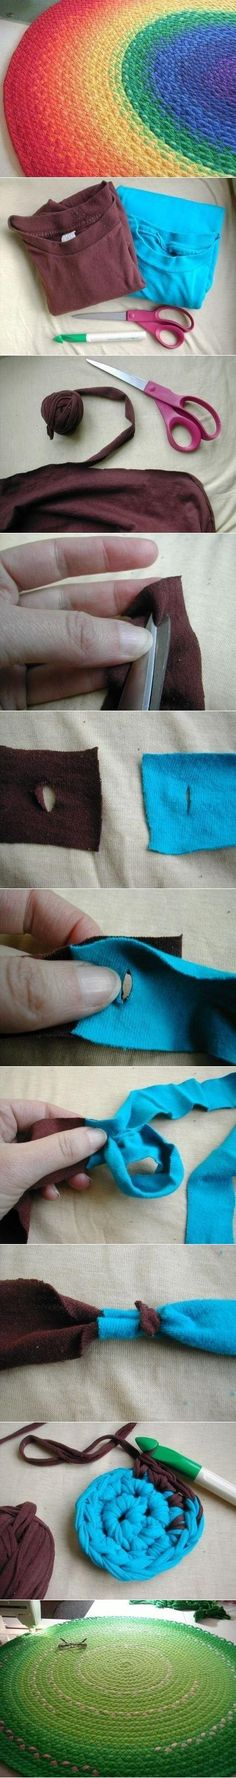 DIY Old T-Shirt rug. I am so gonna try this!